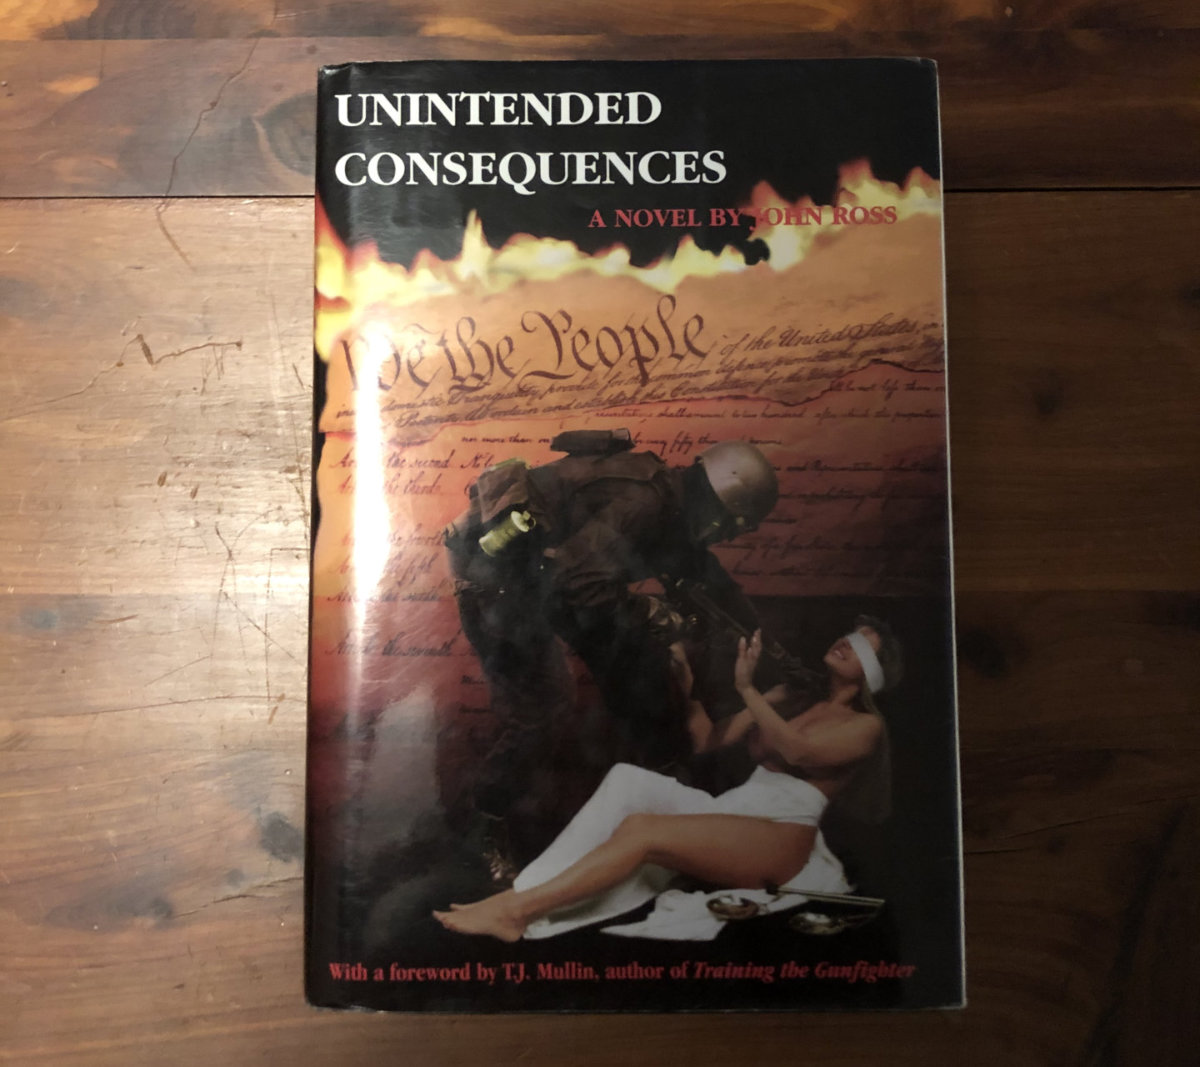 Unintended Consequences by John Ross